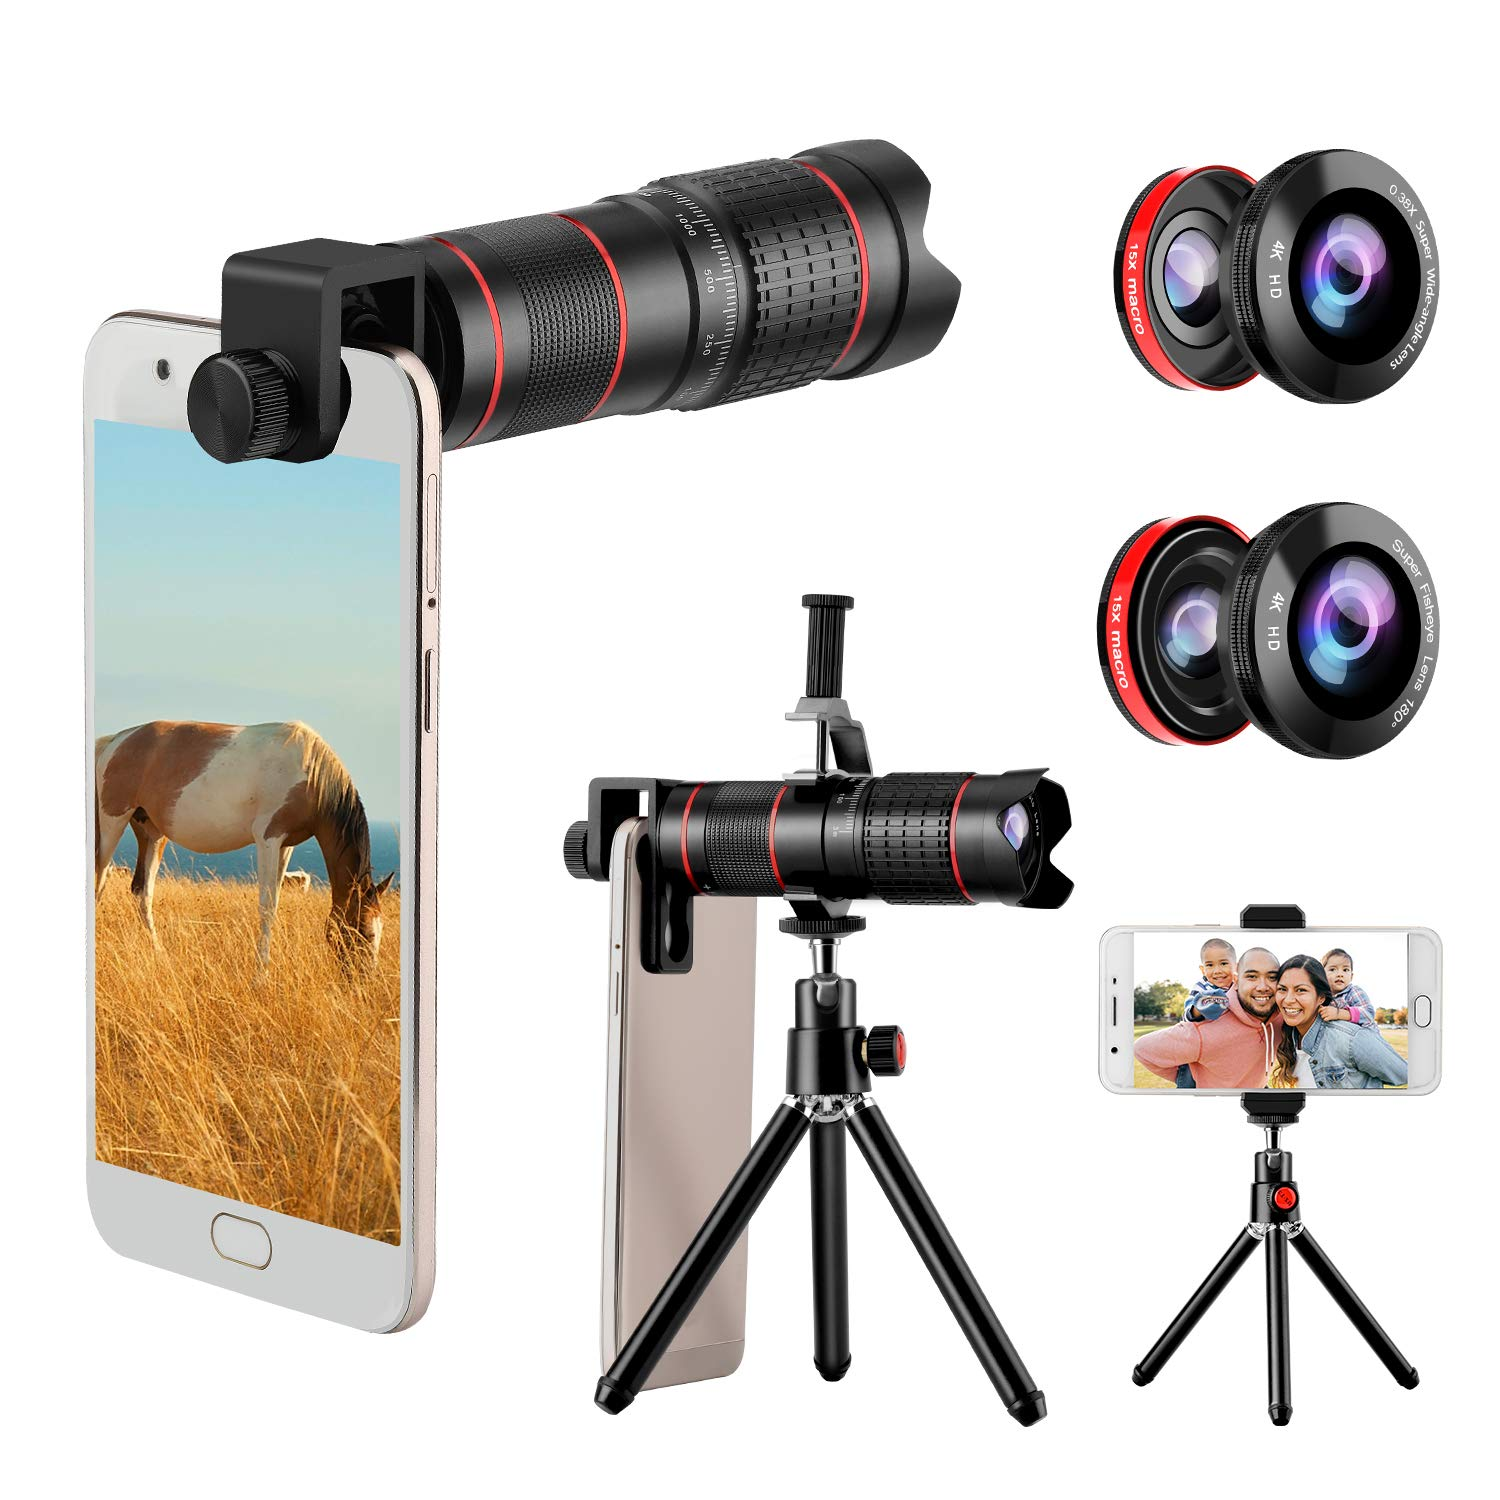 Phone Camera Lens, 5 in 1 Cell Phone Lens Kit 15X Telephoto Zoom Lens + Wide Angle + Fisheye + Macro Lens(2 Lens) Compatible with iPhone Samsung Android and Most Smartphones